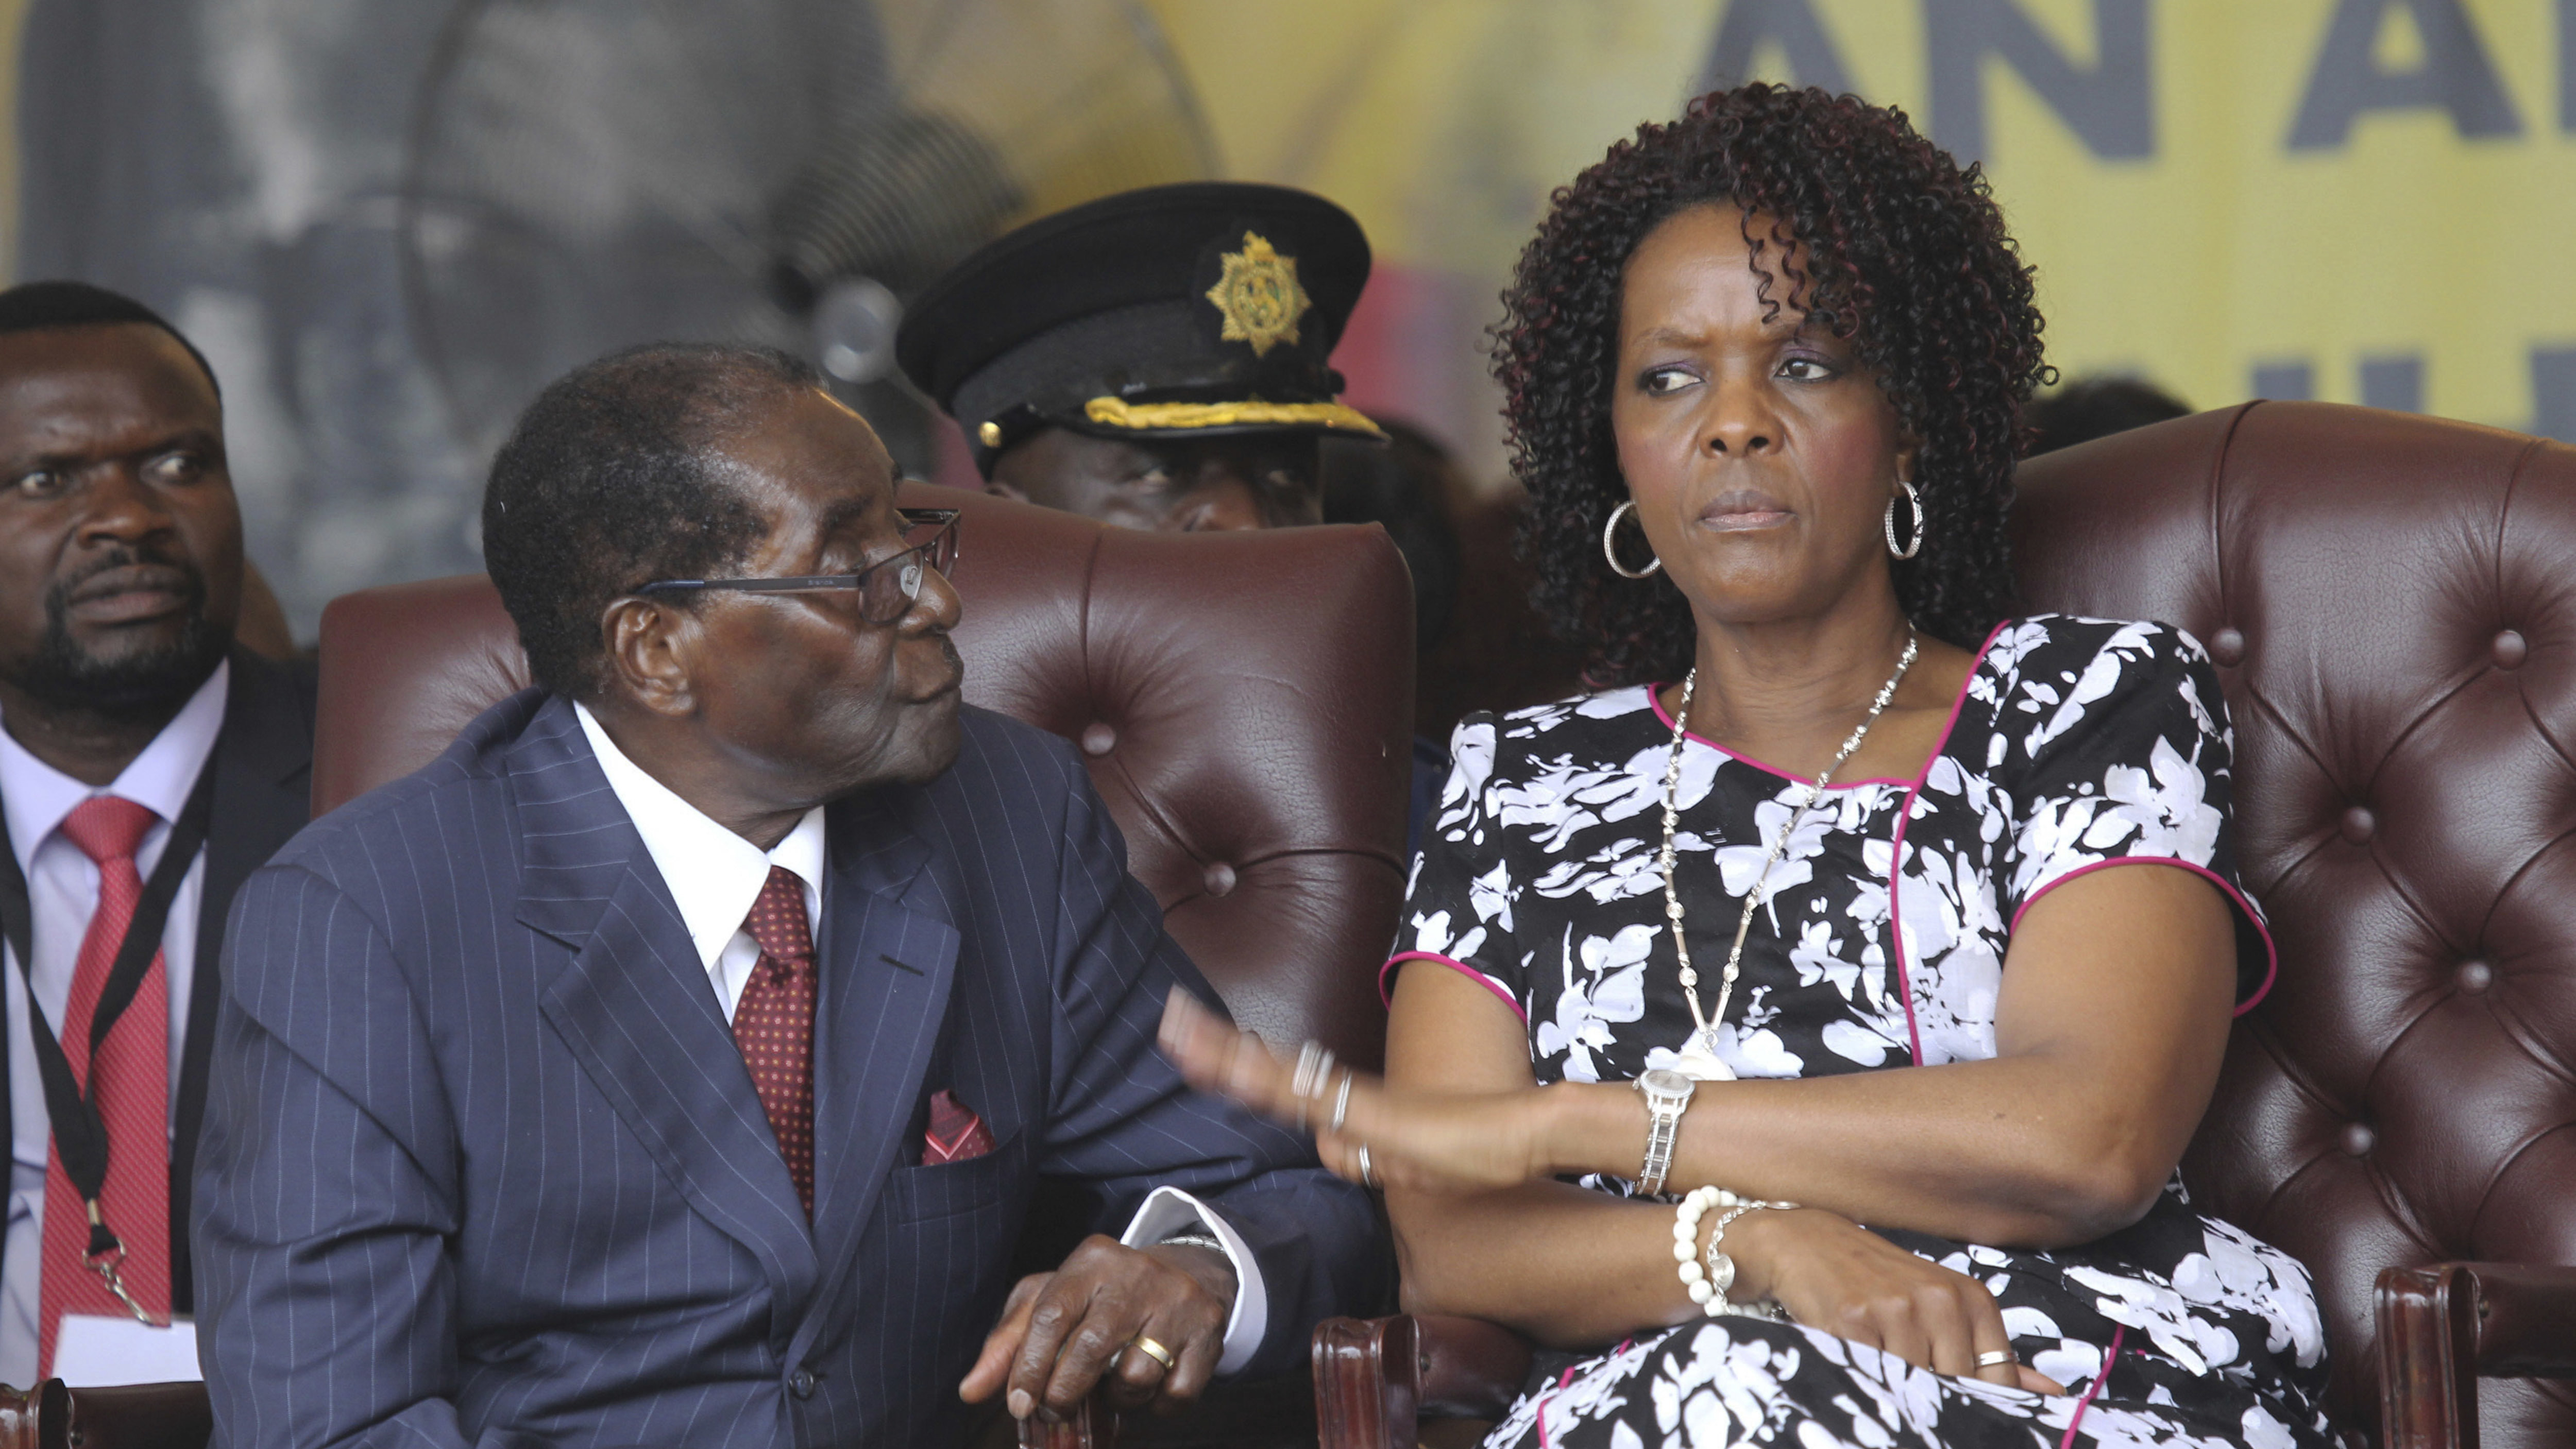 Grace Mugabe assault will distract from trade talks at SADC summit